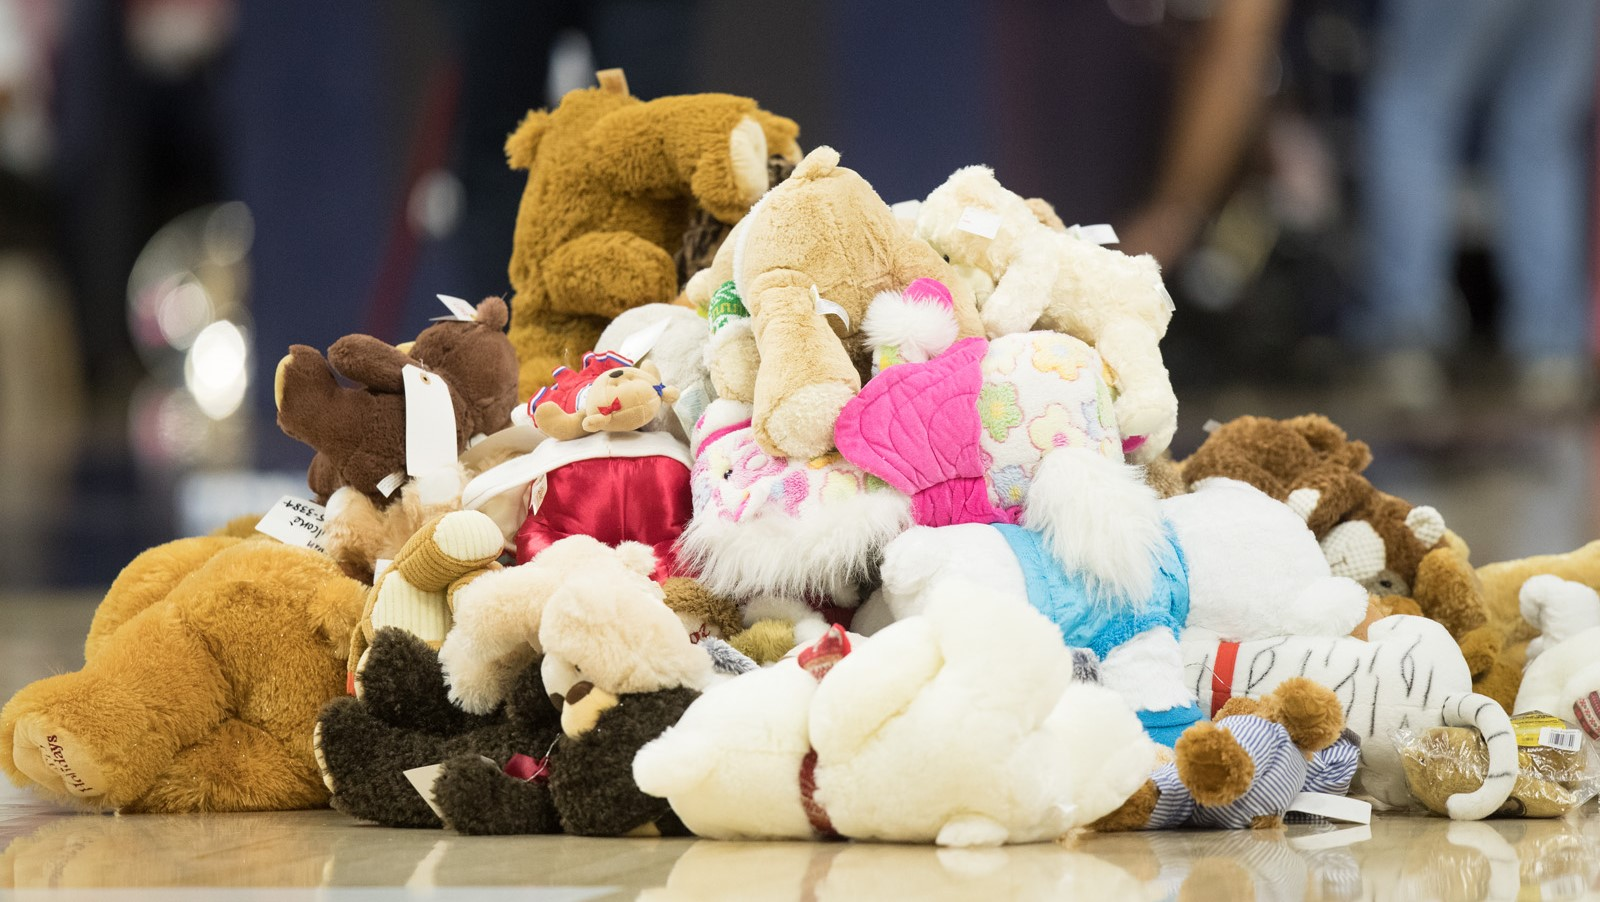 Women s Hoops to Host Second Annual Teddy Bear Toss - University of ... b67fd0e45f